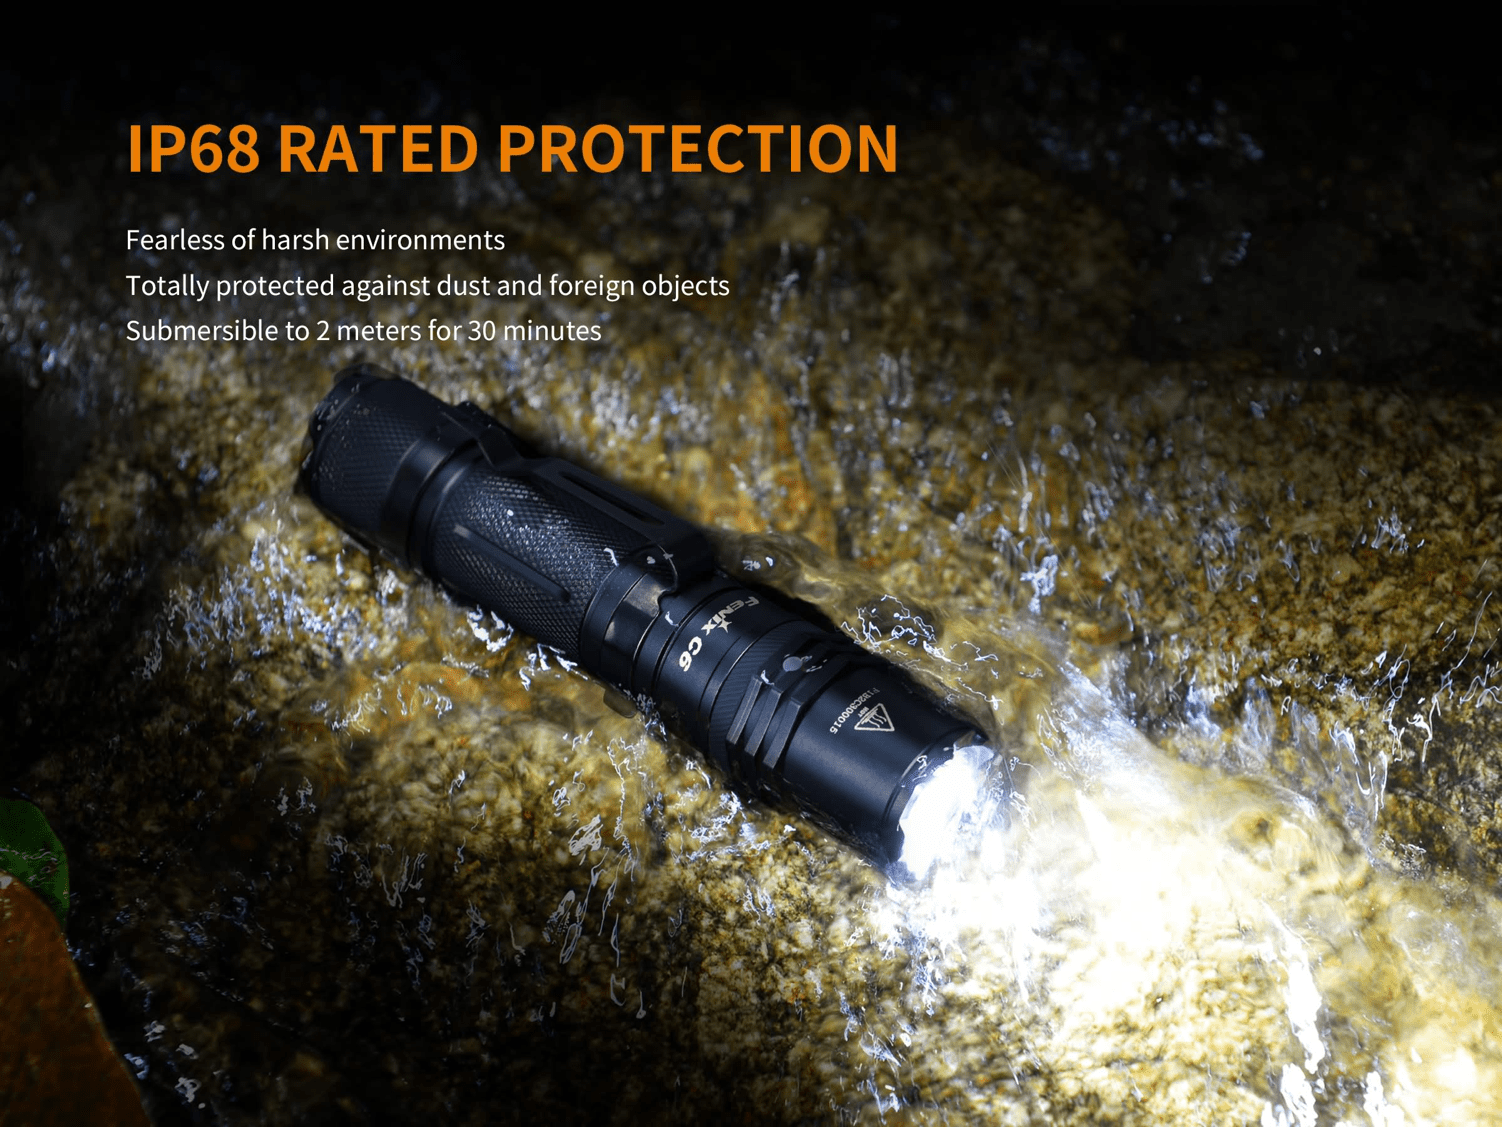 Fenix C6 V2 900 Lumens LED Flashlight, Best USB Rechargeable Torch Light in India, Compact Powerful Pocket size Torch for EDC Work